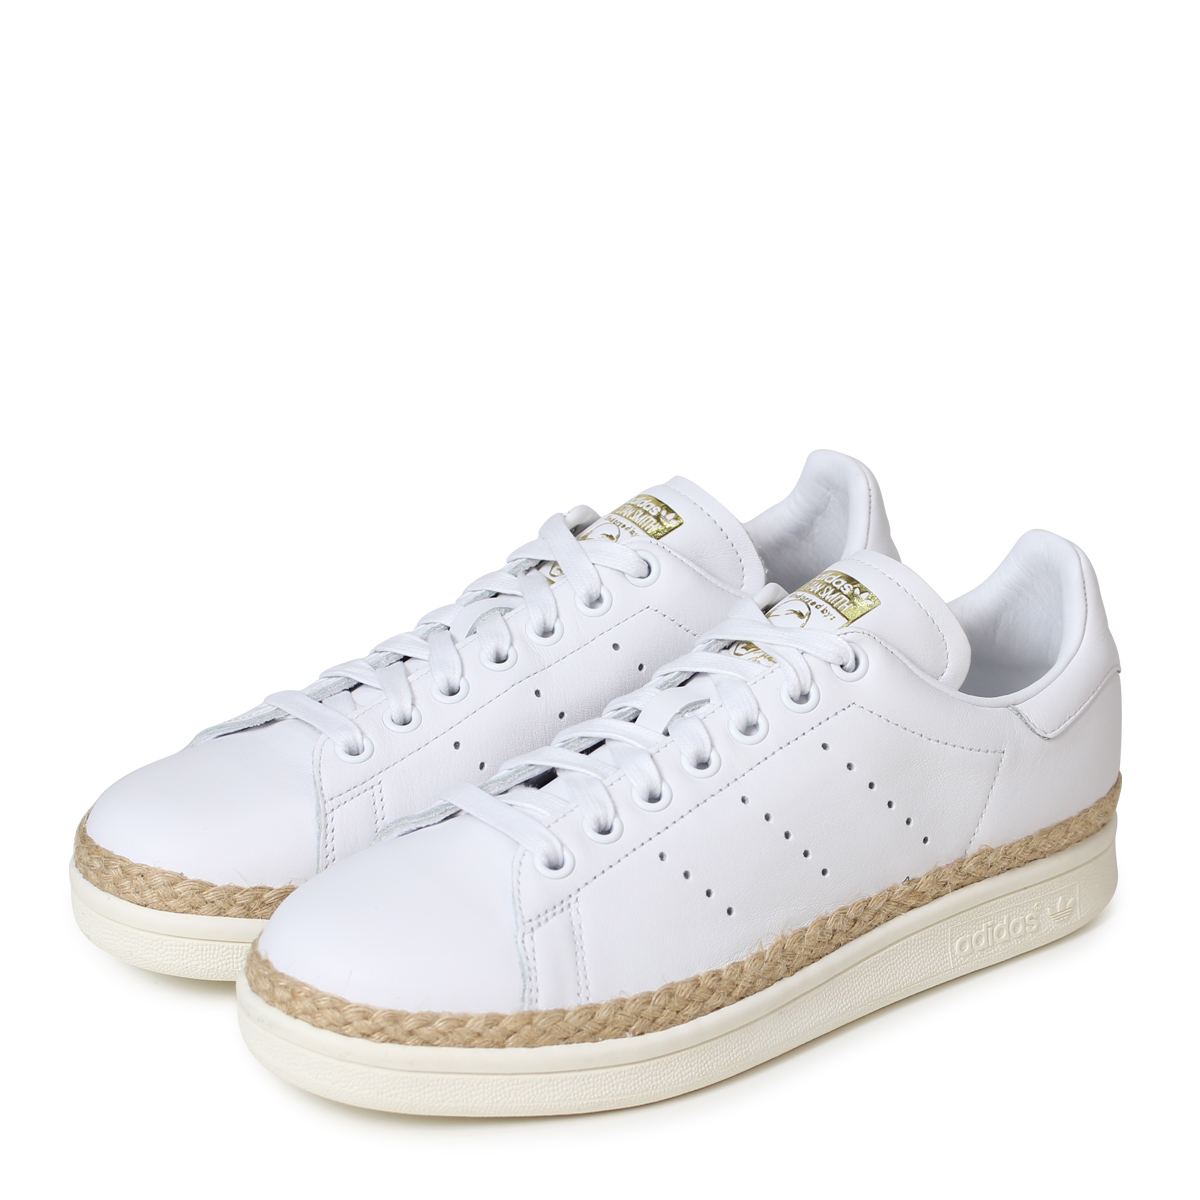 lowest price cf4b0 3a4c5 adidas Originals STAN SMITH NEW BOLD W Adidas Stan Smith Lady s sneakers  CQ2439 white originals  load planned Shinnyu load in reservation product  5 9 ...